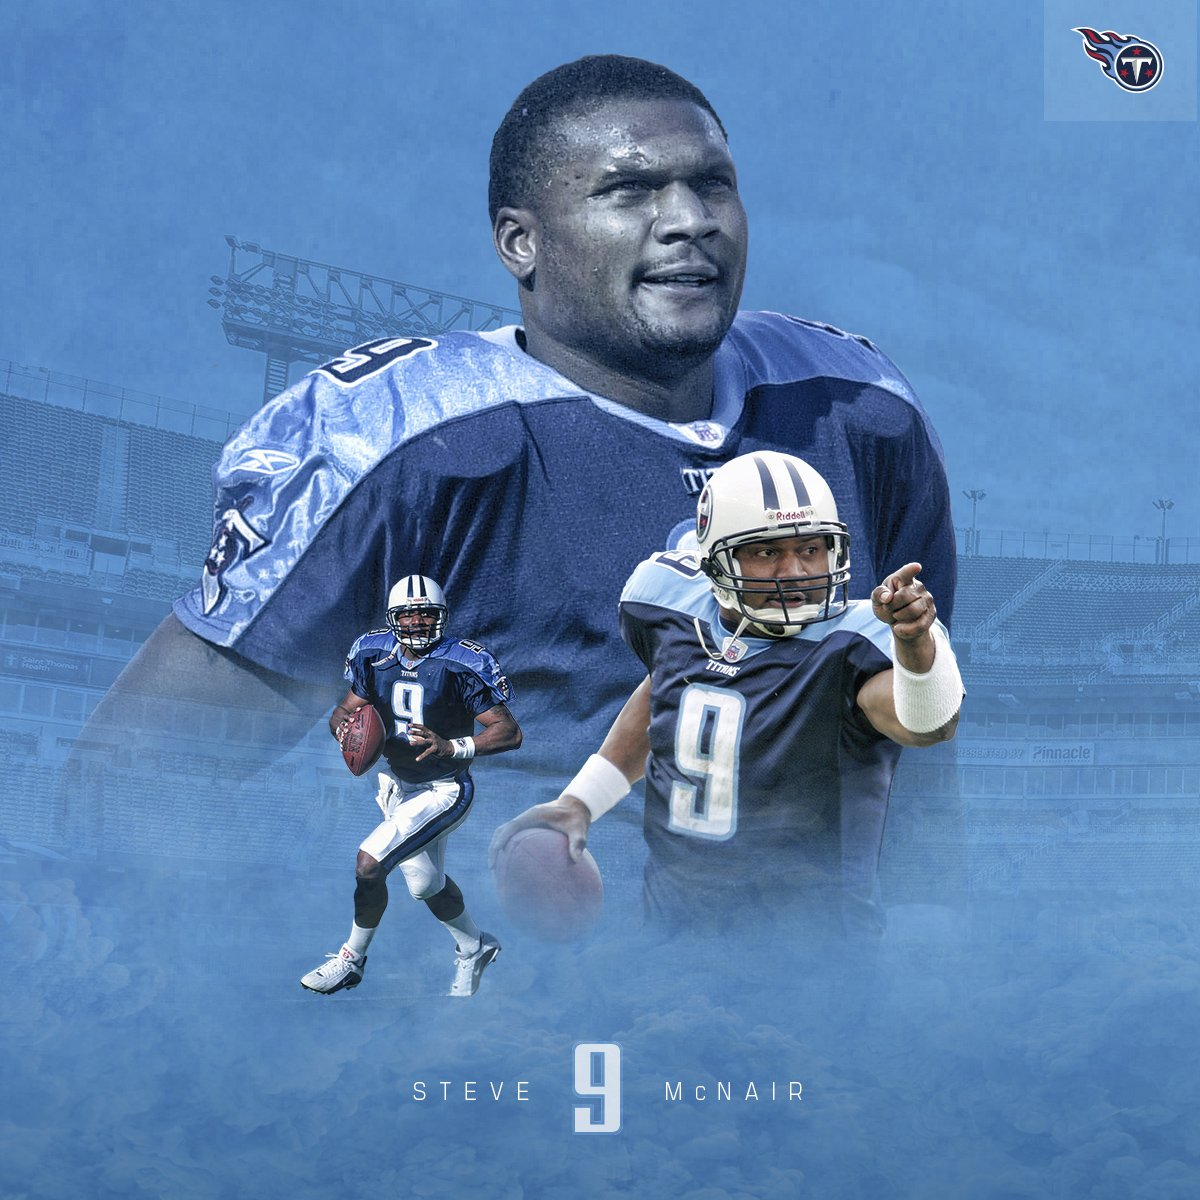 separation shoes d31bb 2a85a Tennessee Titans Retire Steve 'Air' McNair's Jersey Number